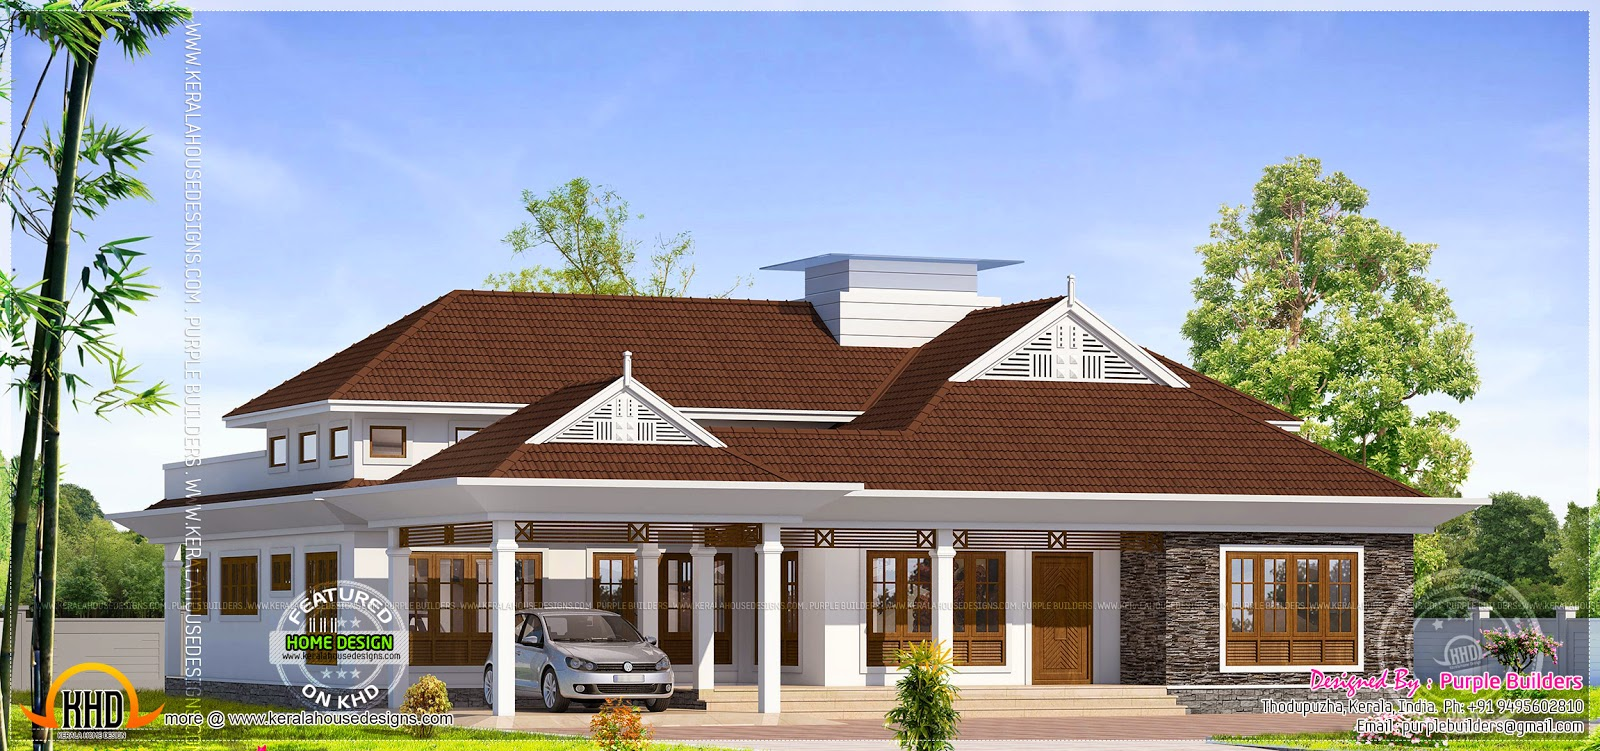 Single Floor Bungalow Elevation : Grand single storied bungalow exterior kerala home